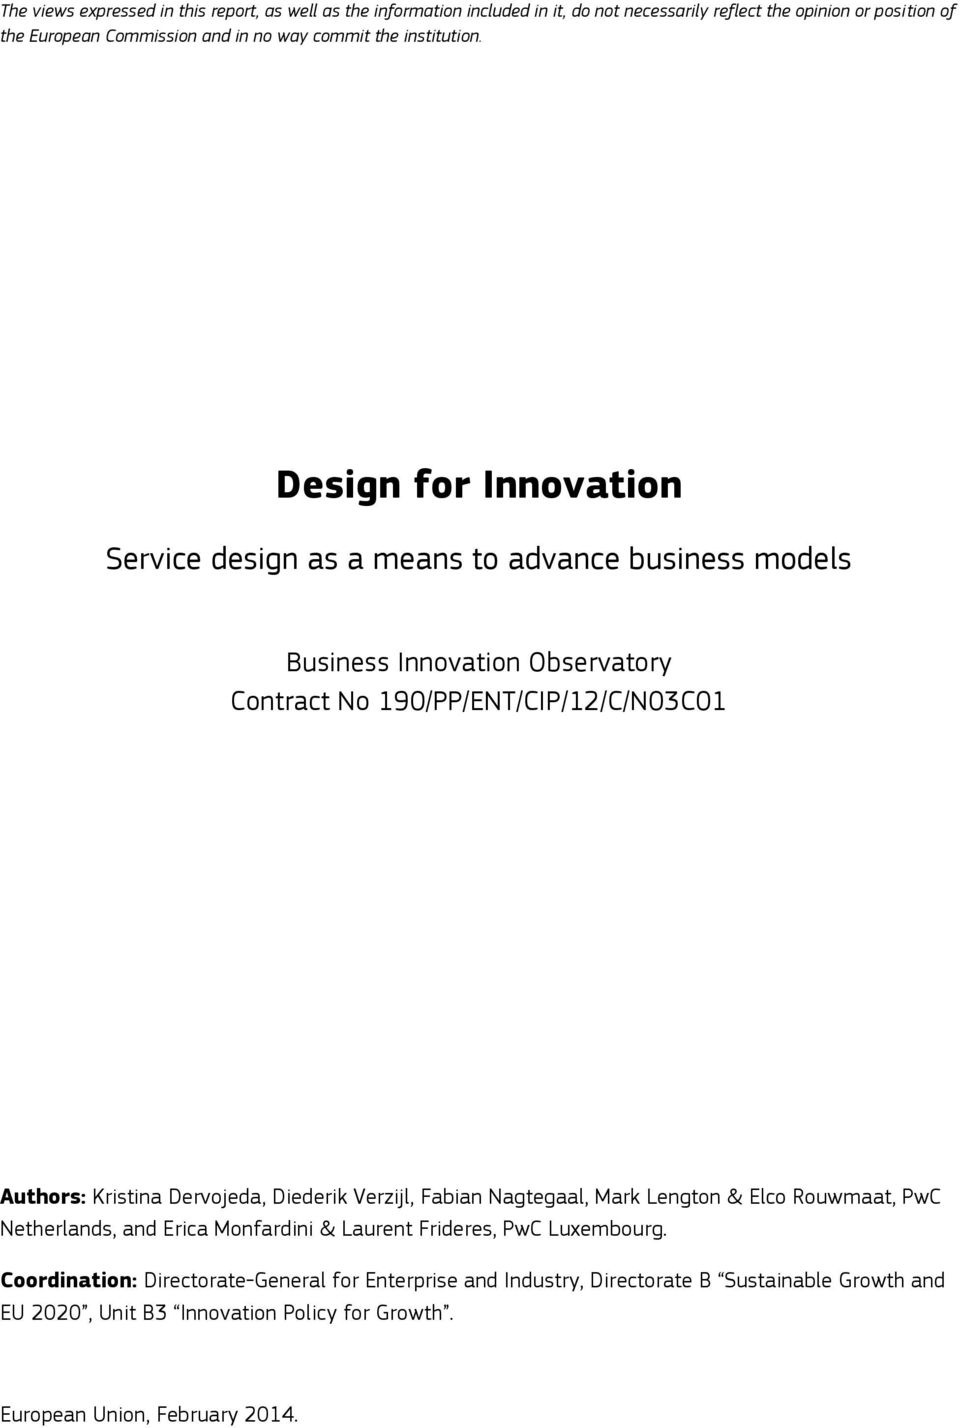 Design for Innovation Service design as a means to advance business models Business Innovation Observatory Contract No 190/PP/ENT/CIP/12/C/N03C01 Authors: Kristina